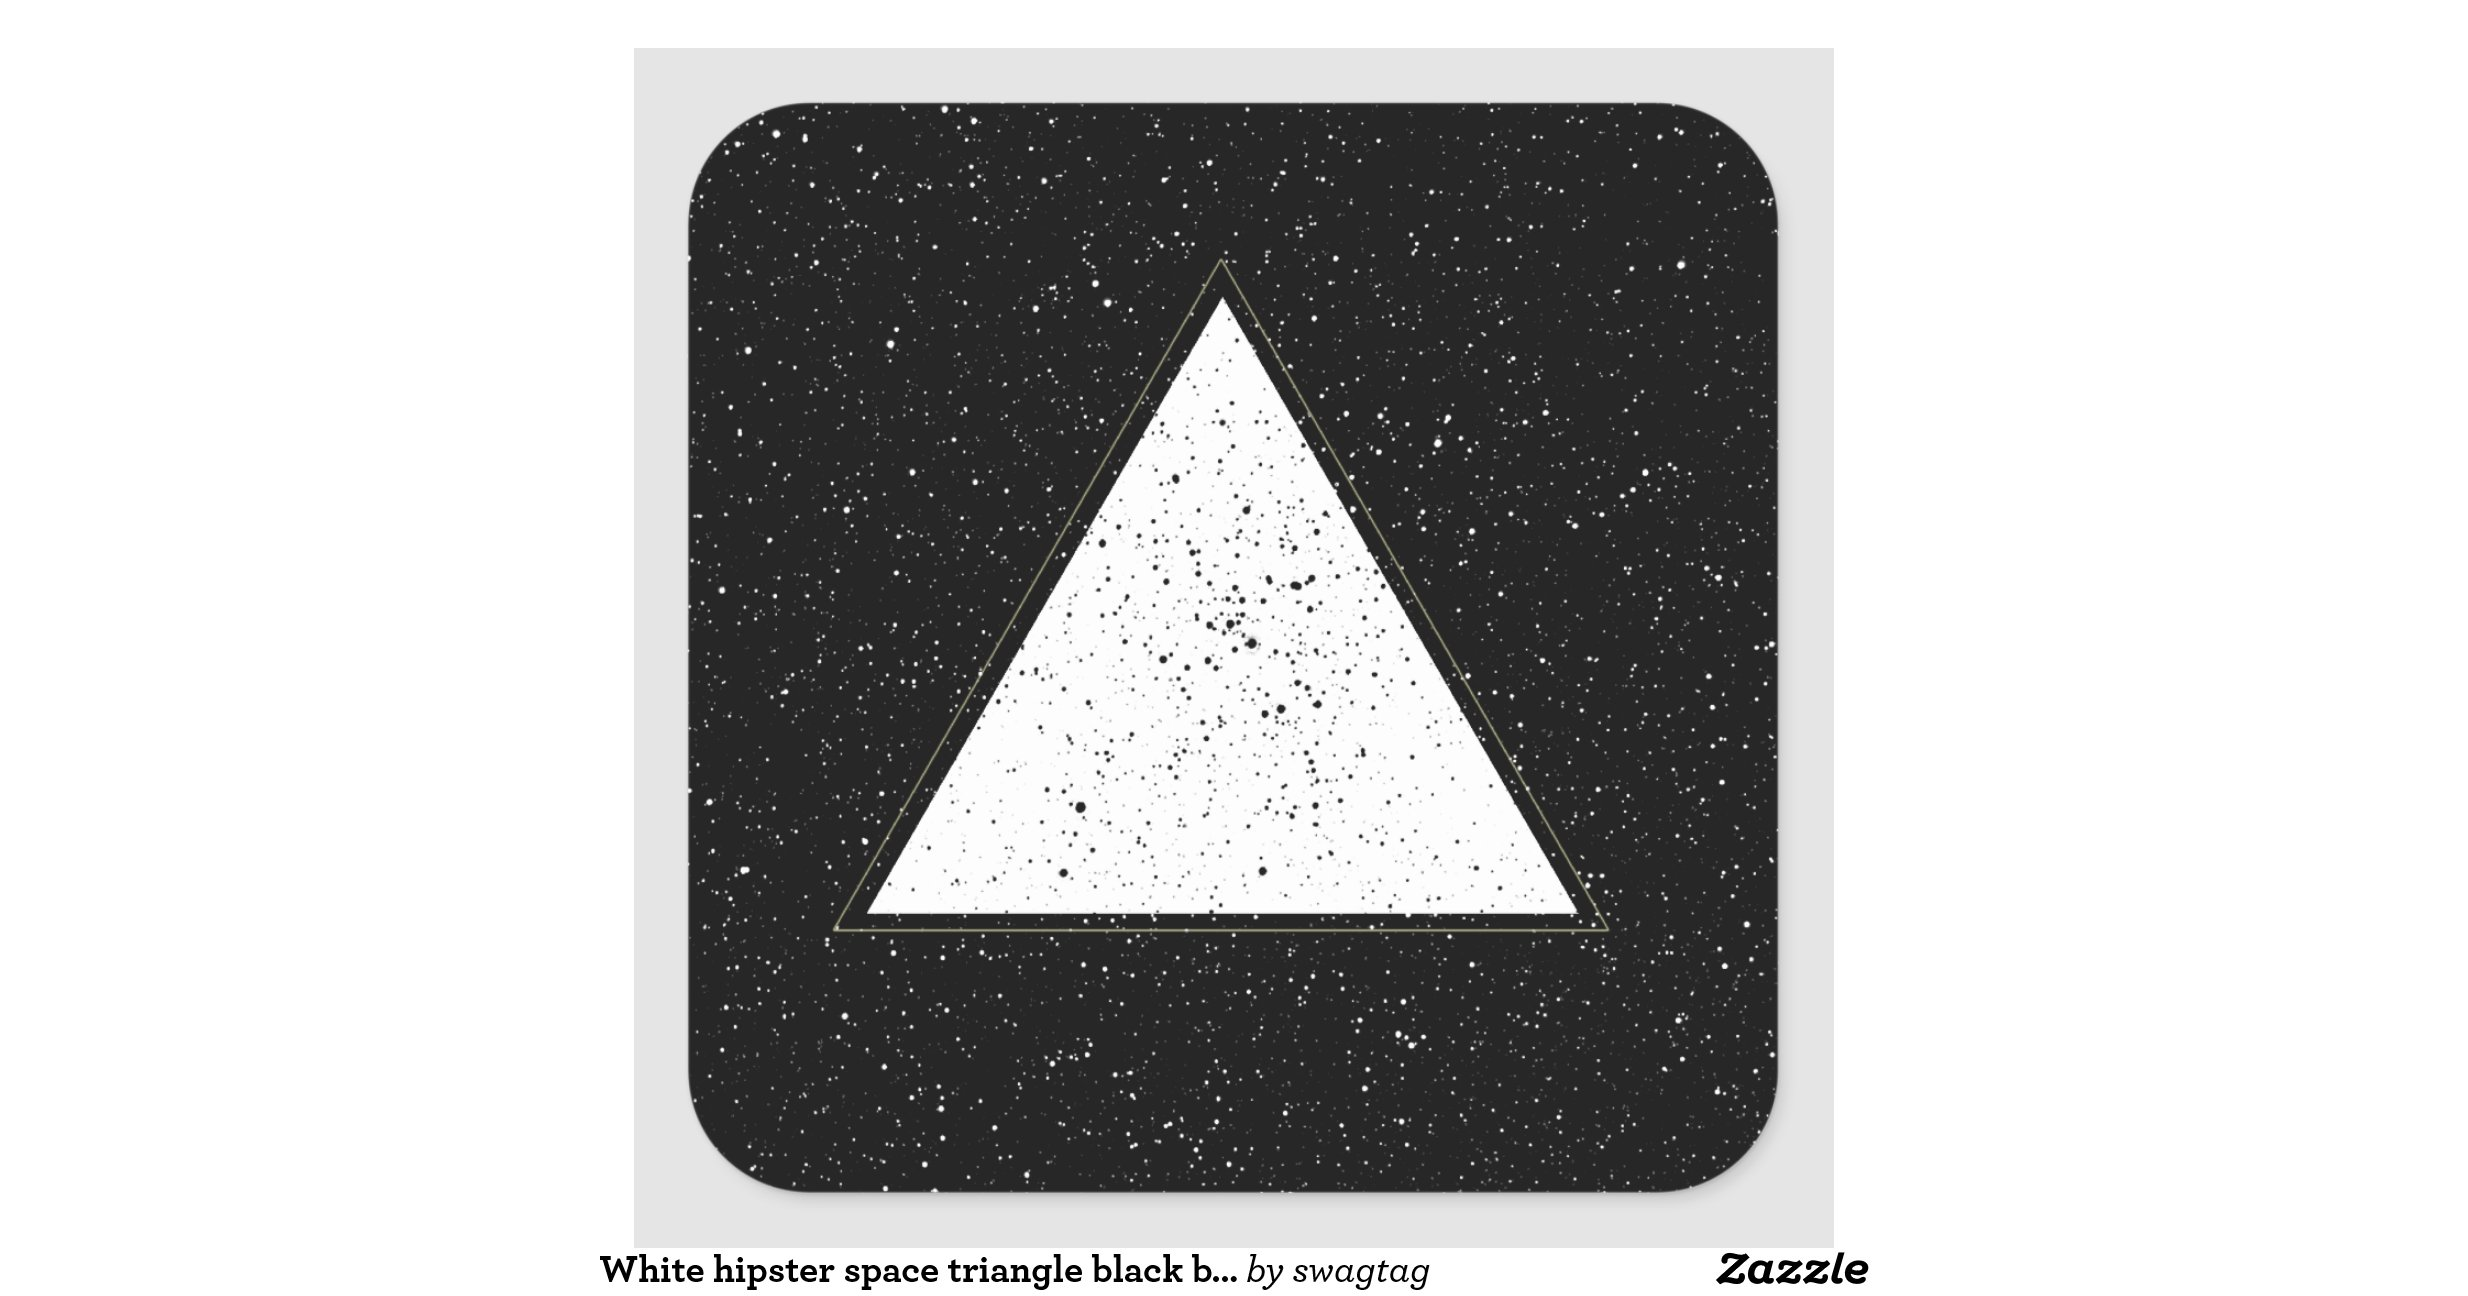 White hipster space triangle black background square ...